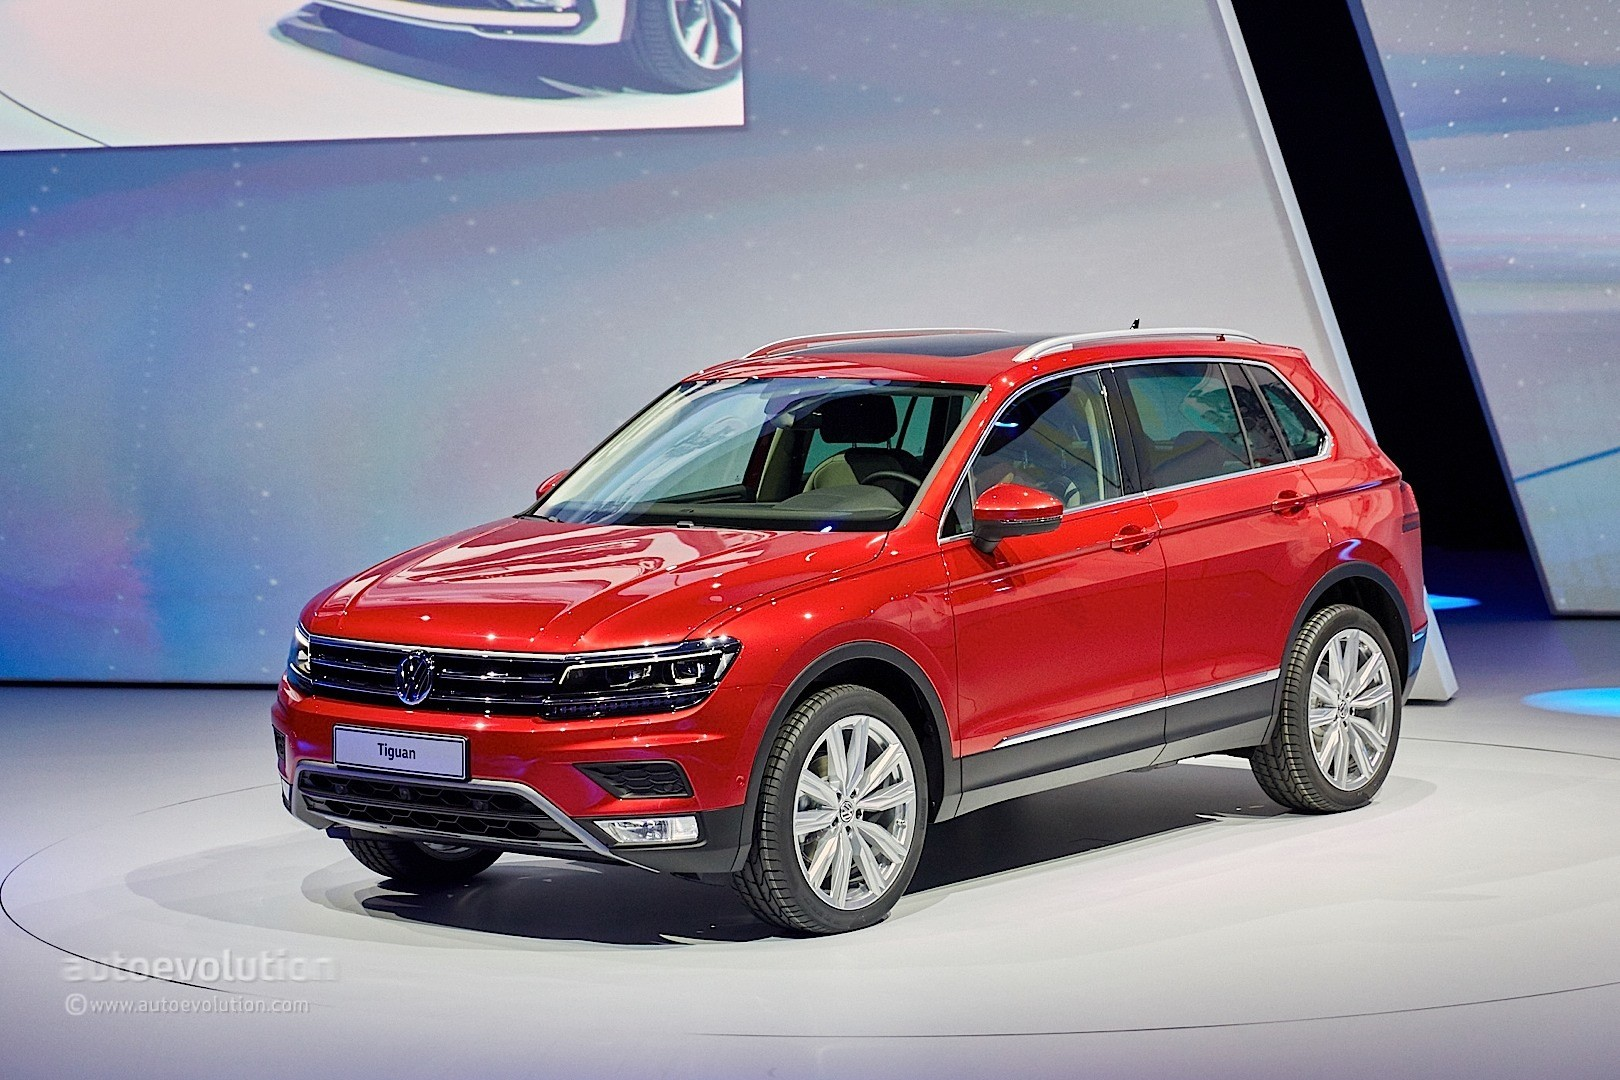 2017 Volkswagen Tiguan Is All Grown Up in Frankfurt - autoevolution